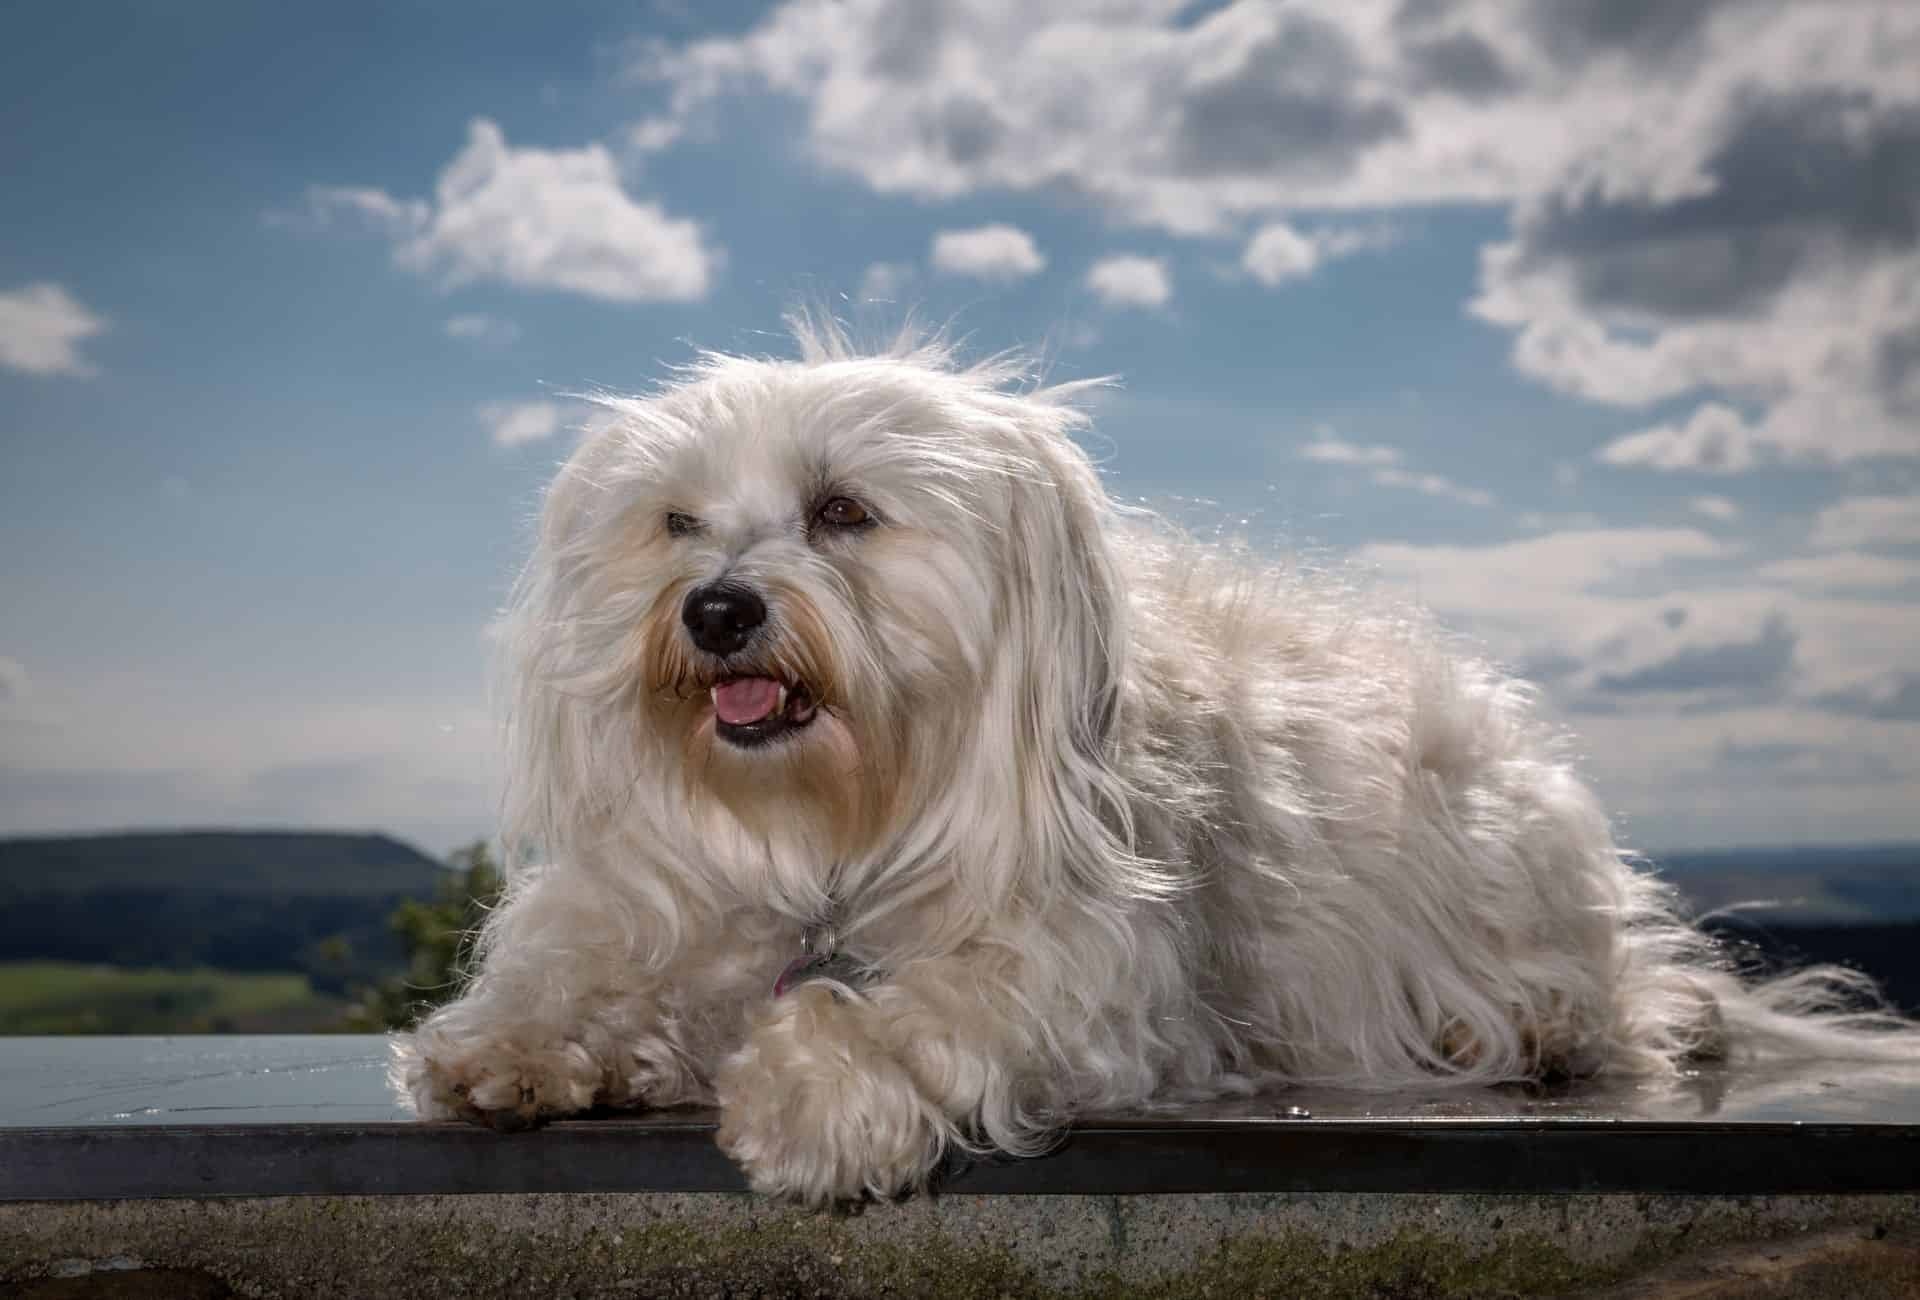 Furry Havanese on a clear sunny day.